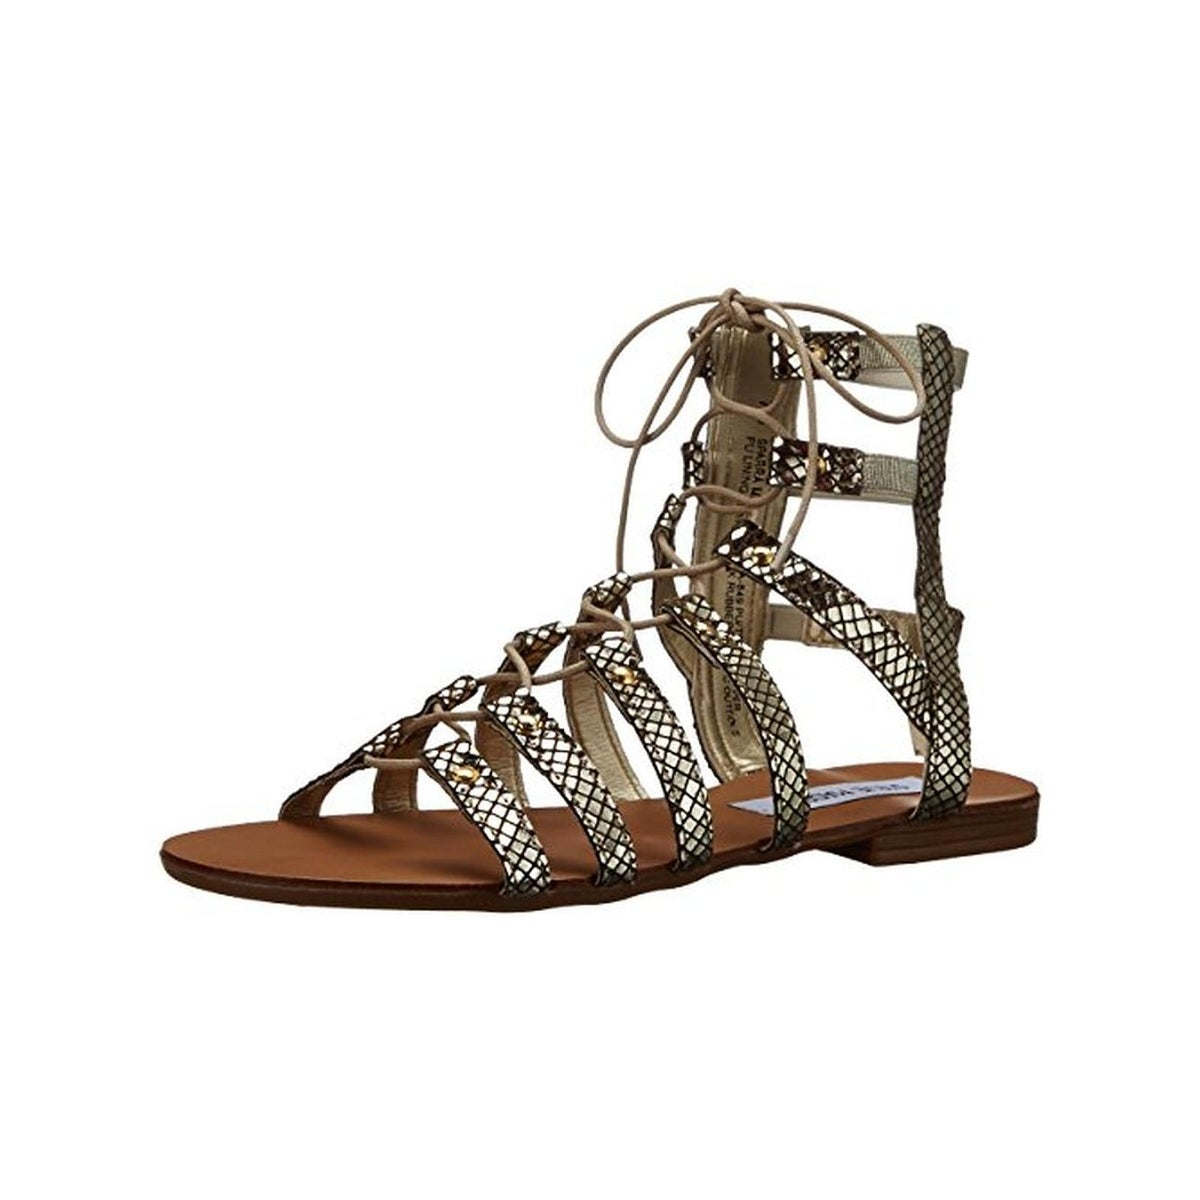 972004bb658 Gladiator Steve Madden Women's Shoes | Find Great Shoes Deals ...